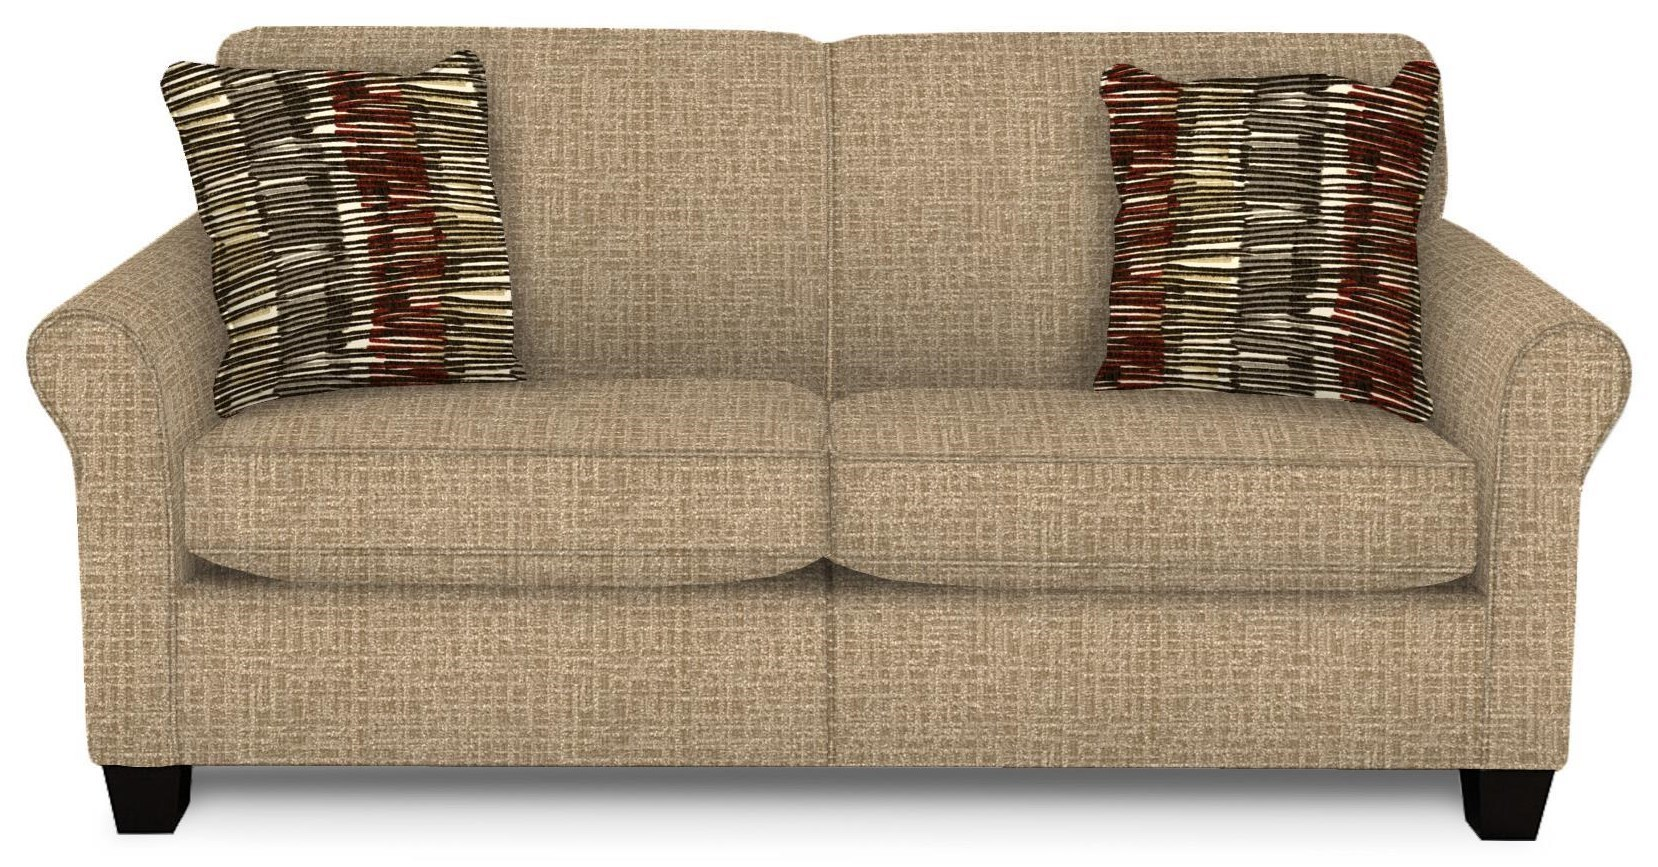 Sofa Beds Perth Damian Full Sleeper Sofa By England At Crowley Furniture Mattress